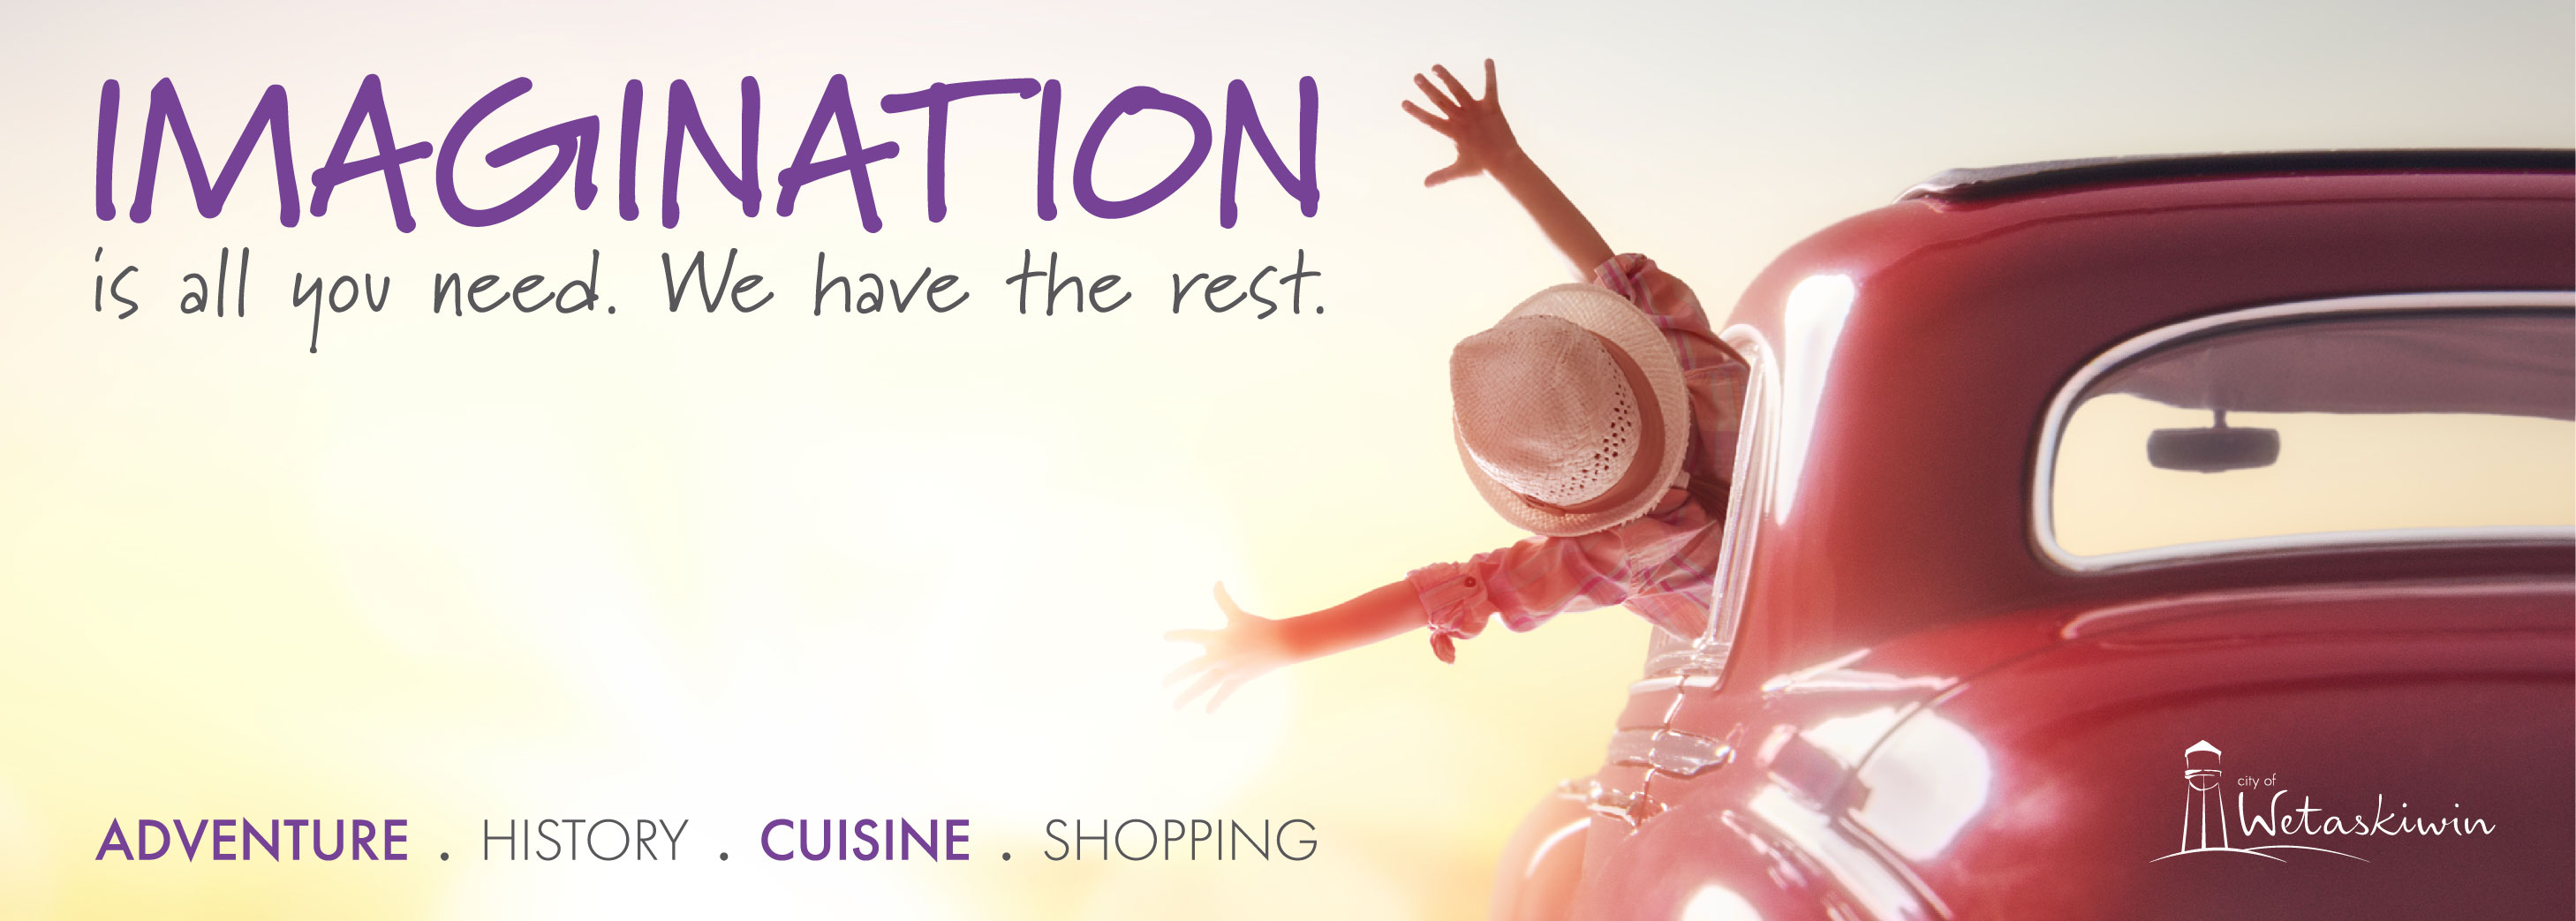 Imagination is all you need. We have the rest. Adventure, history, cuisine, shopping.